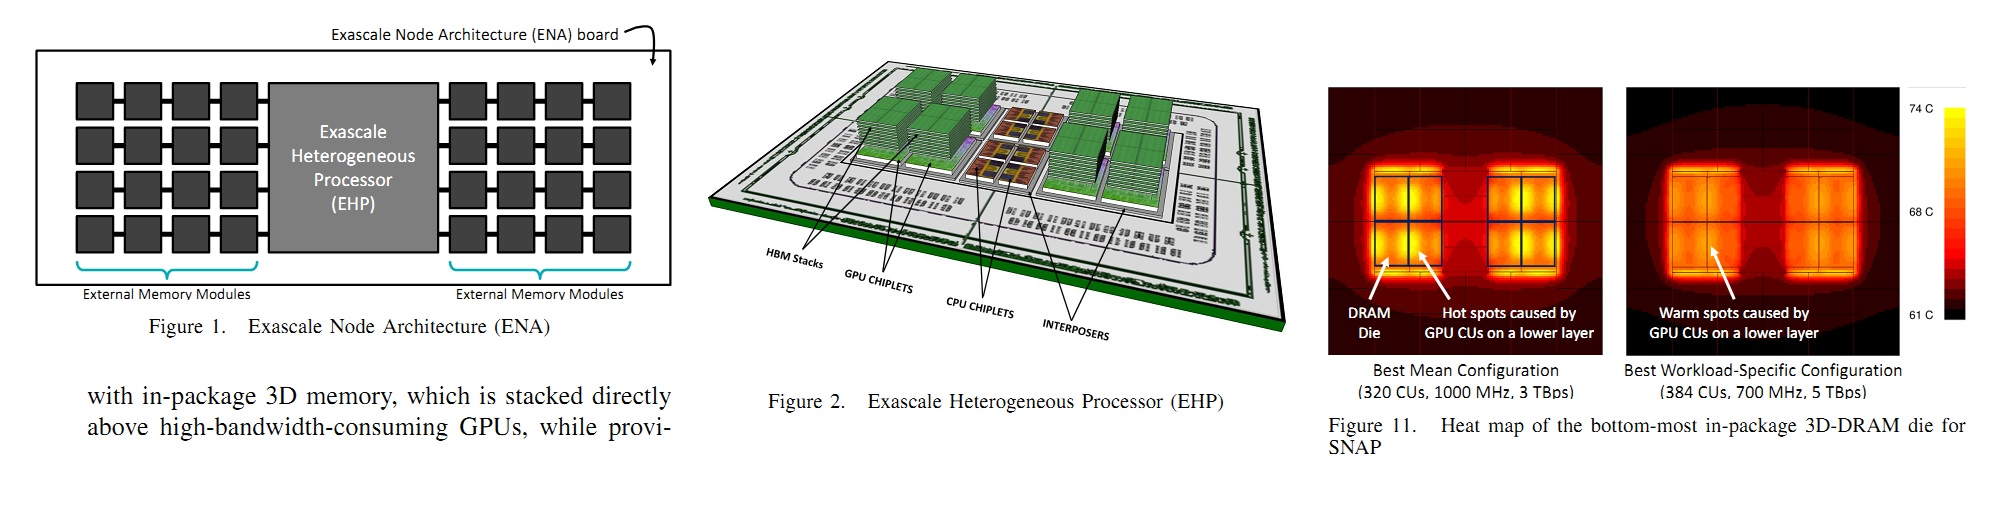 [computermachines] Design and Analysis of an APU for Exascale Computing (10 Teraflops / 200W )